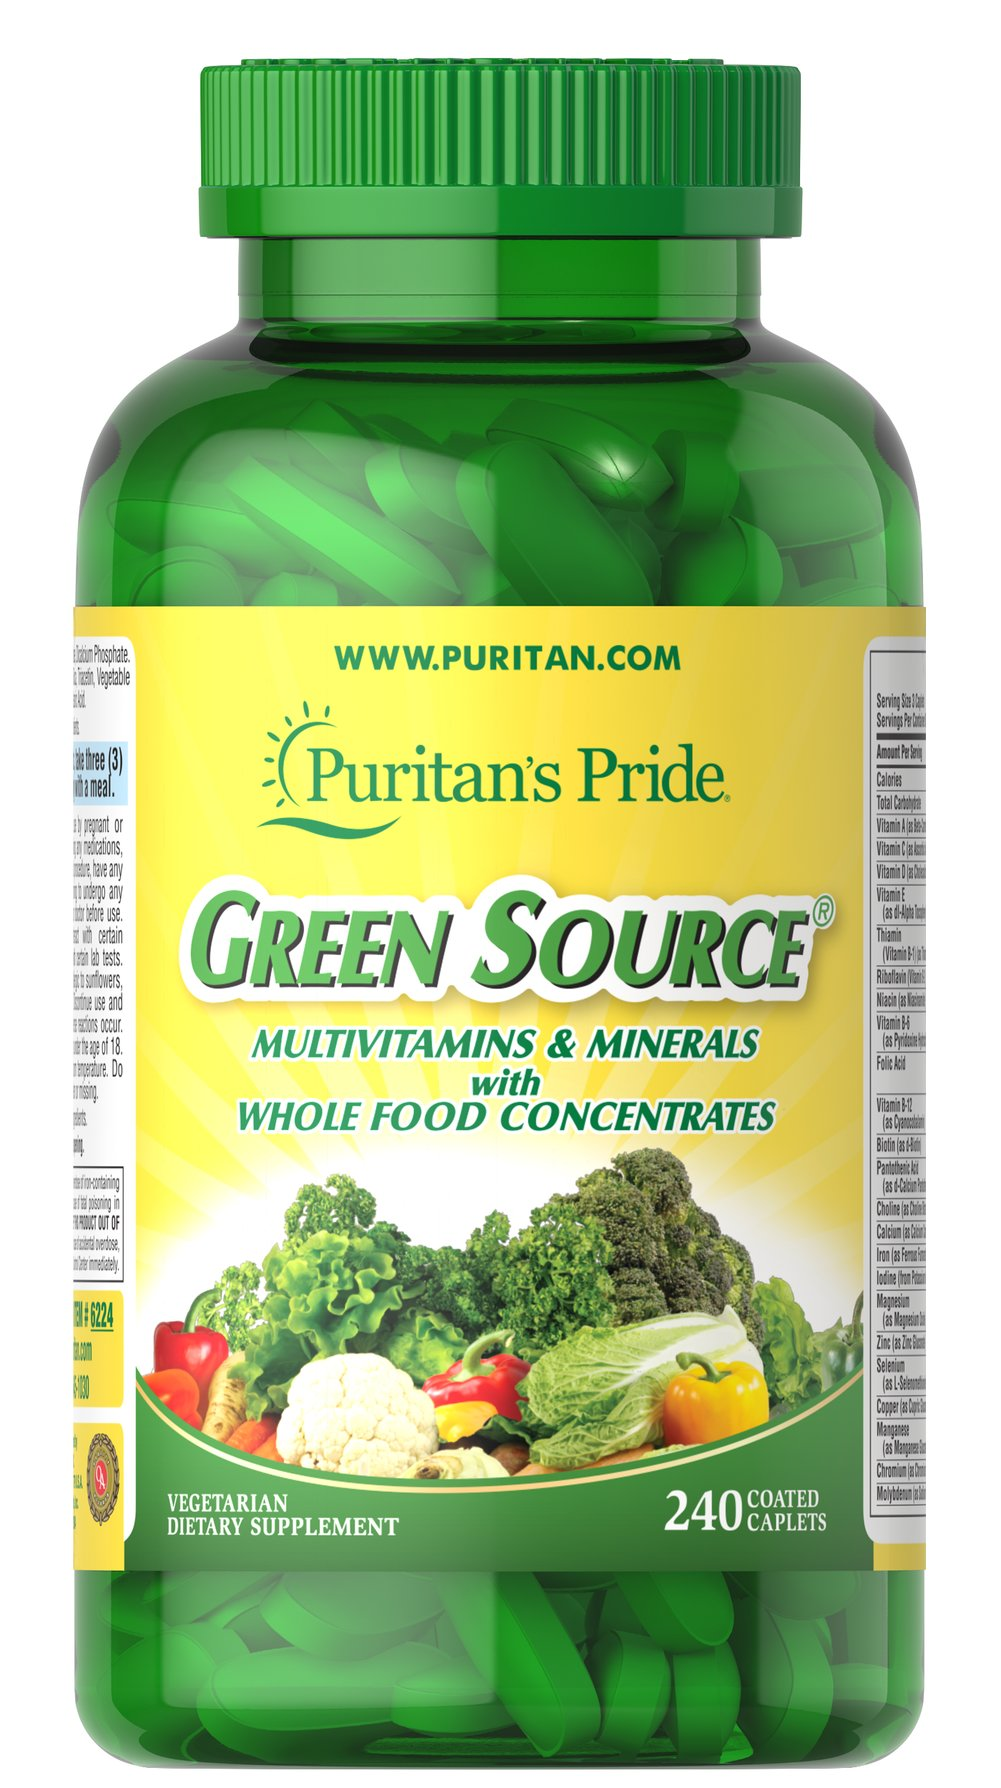 Green Source® Multivitamin & Minerals <p>This concentrated formula contains potent food source nutrients to provide essential vitamins, minerals, enzymes and amino acids. It also provides all the naturally occurring active constituents of whole foods.</p> 240 Caplets  $66.99